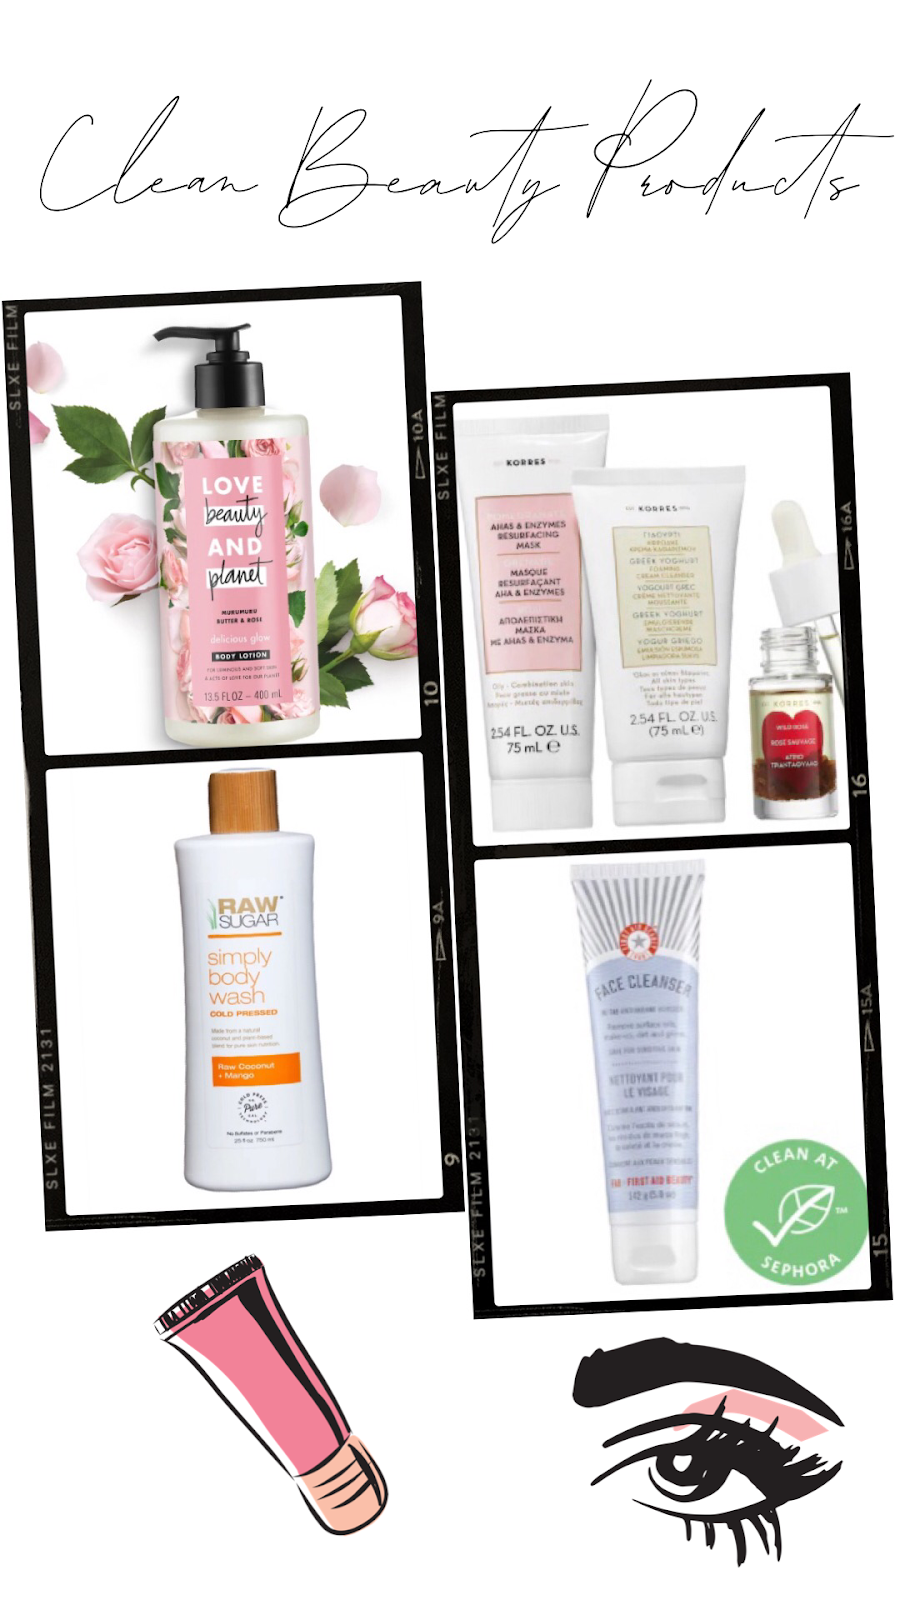 The 5 Clean Beauty Products & Brands You Need to Use - Affordable by Amanda - Shares Her Top Clean Beauty Favorites